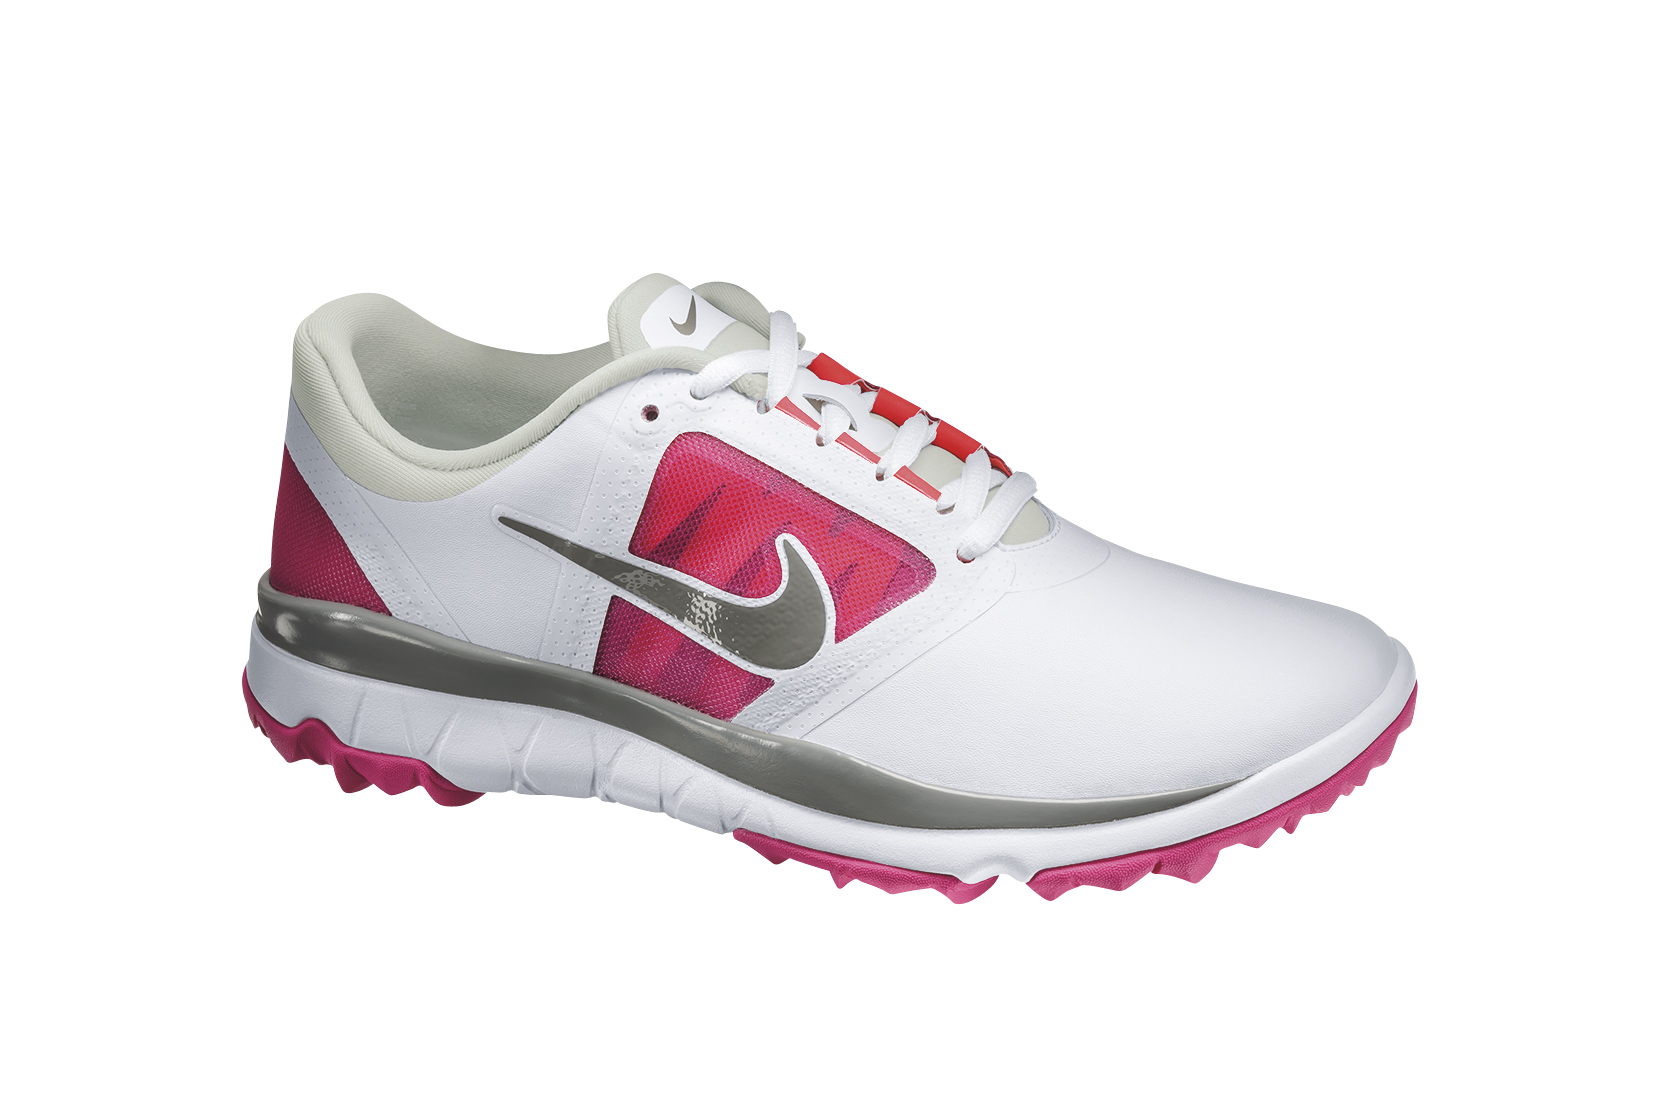 274355a478a4 ... nike golf shoes for women